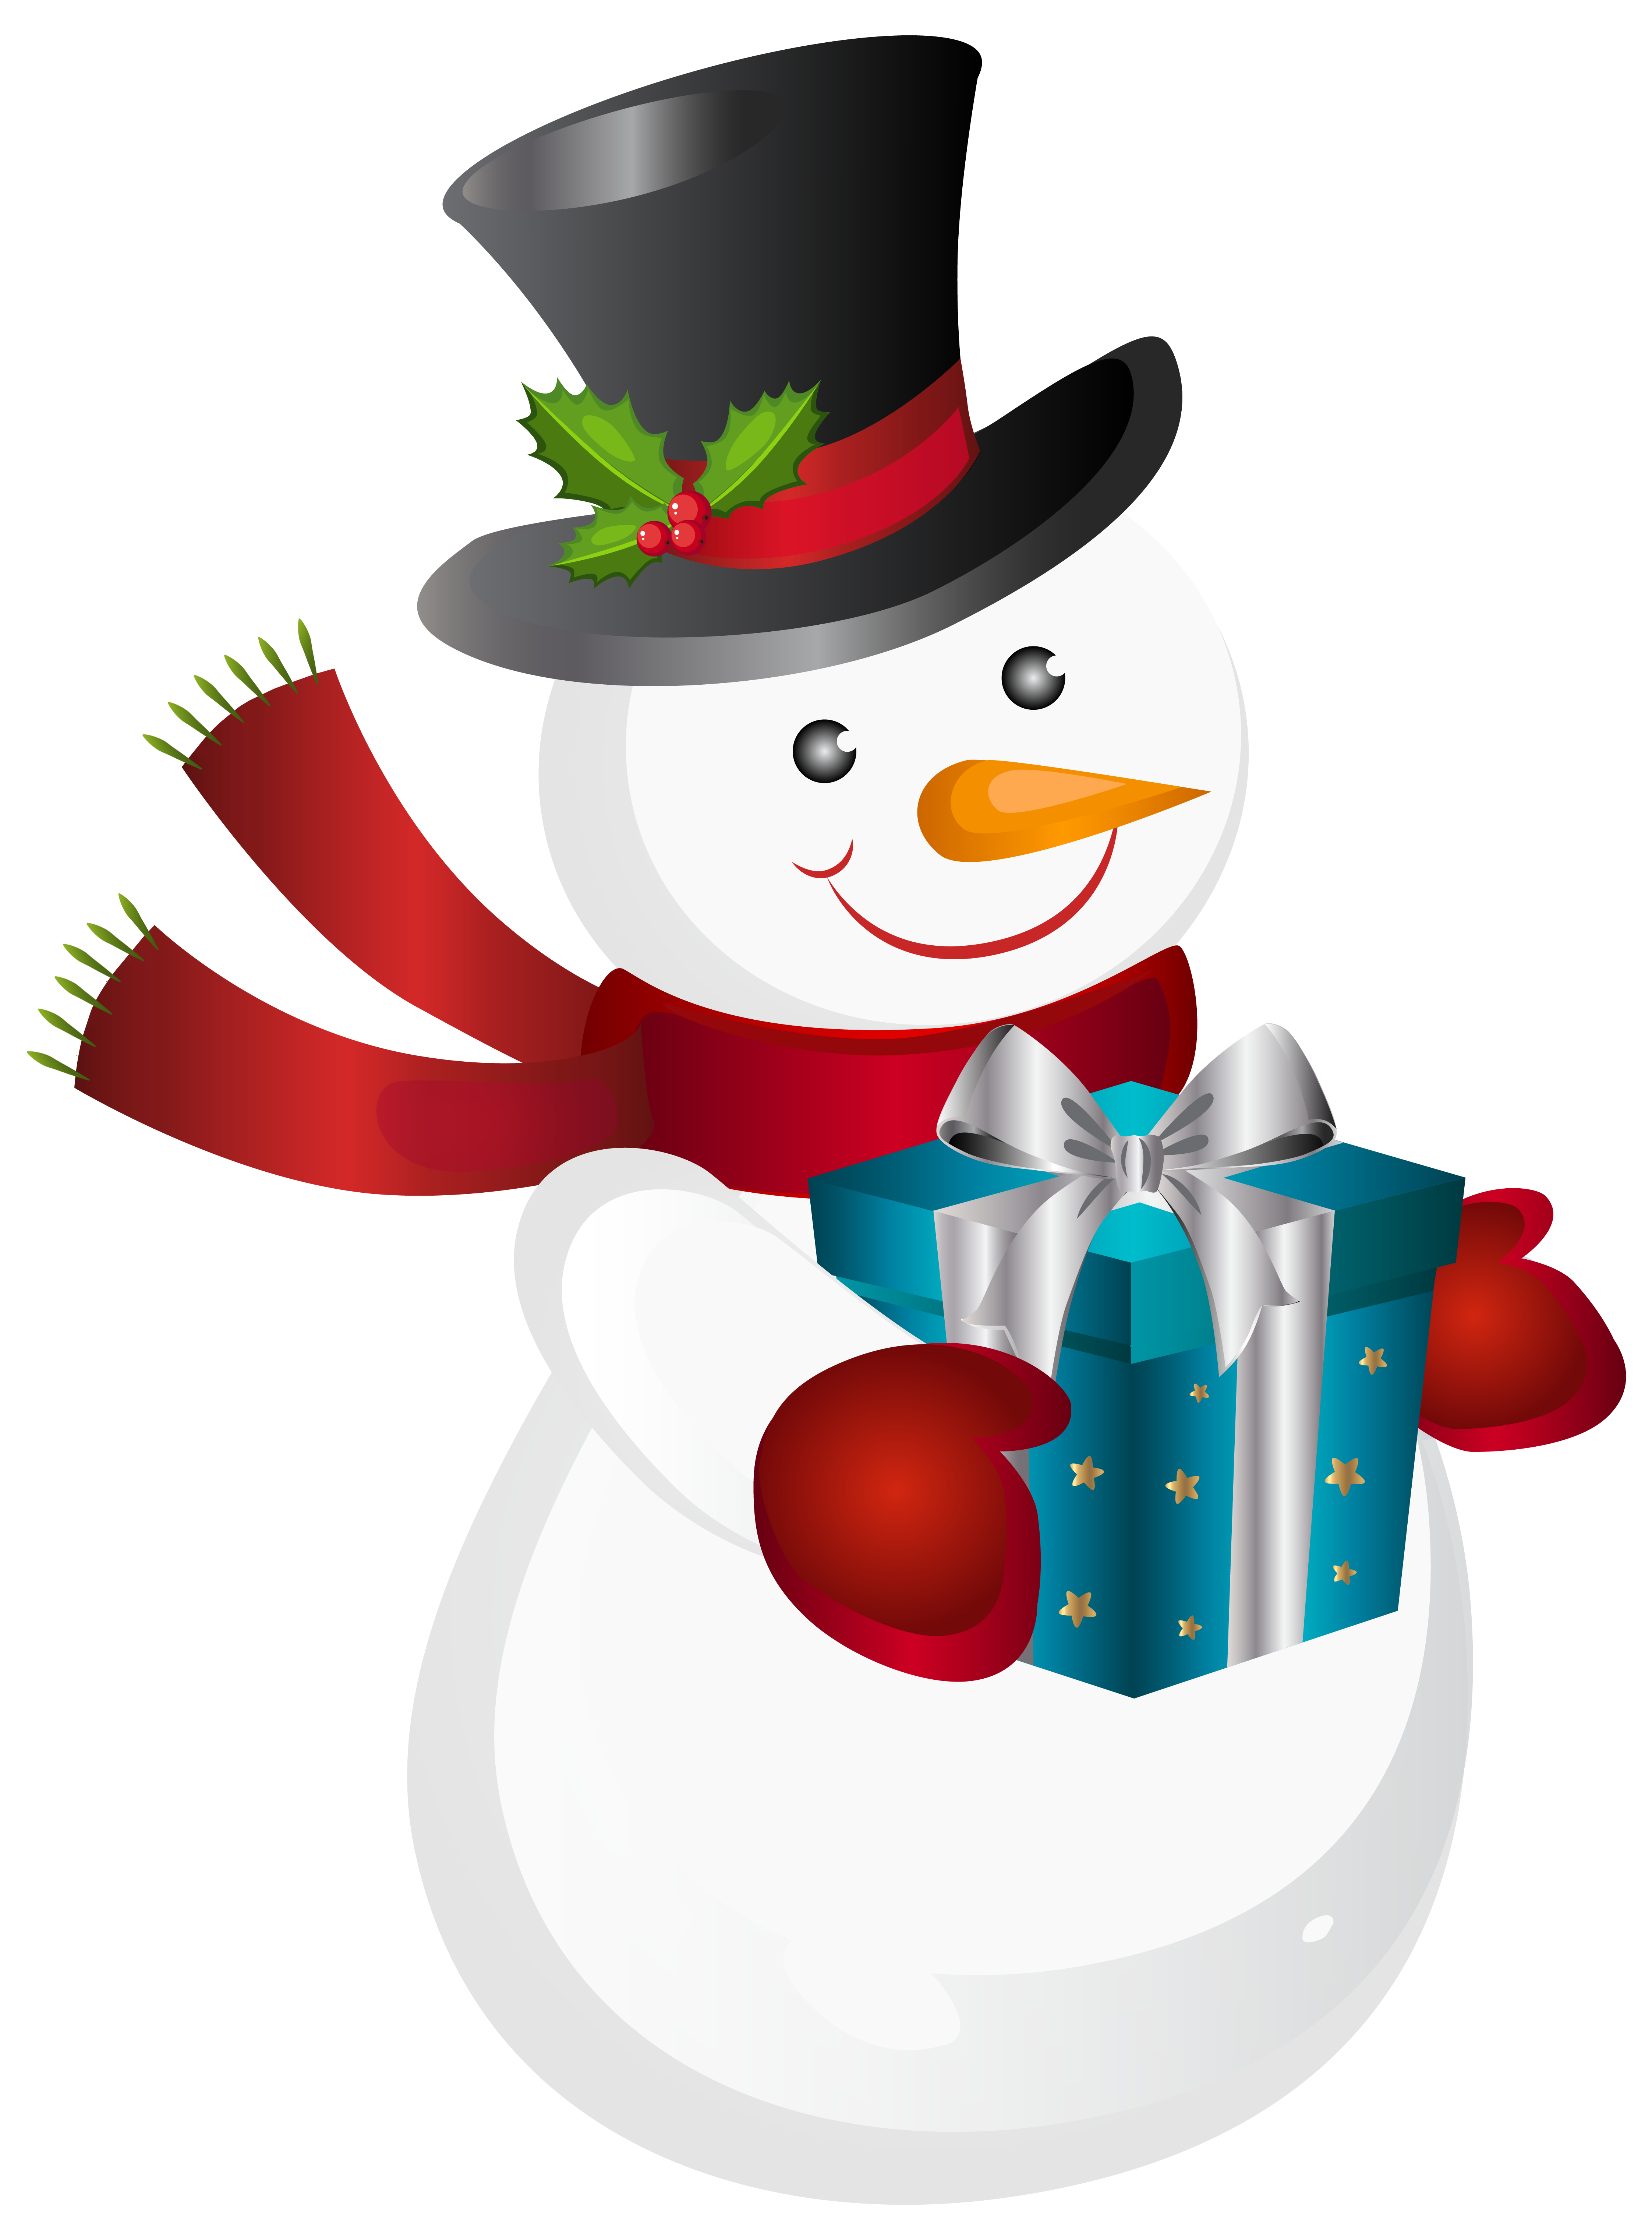 Snowman with heart clipart picture library download Christmas Snowman Transparent PNG Clip Art Image | Gallery ... picture library download